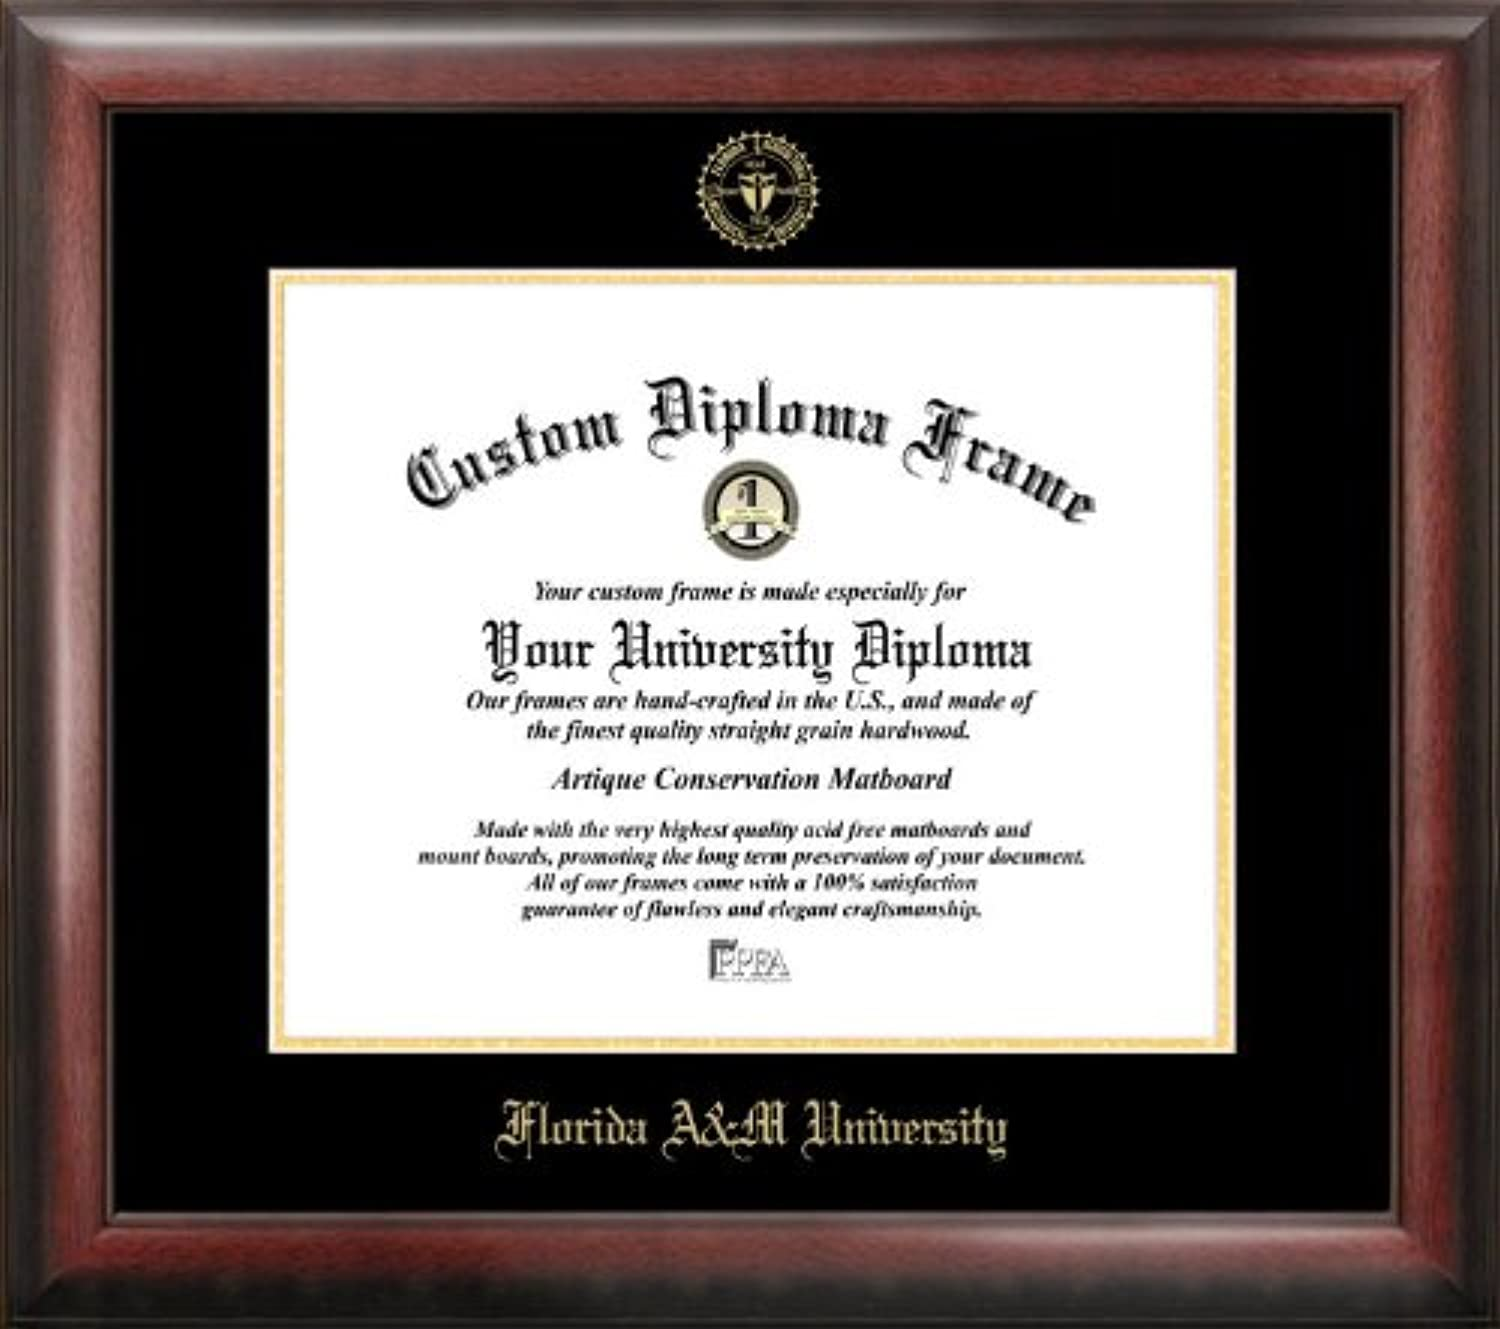 Campus Images Florida A&M University Embossed Diploma Frame, 8.5  x 11 , gold